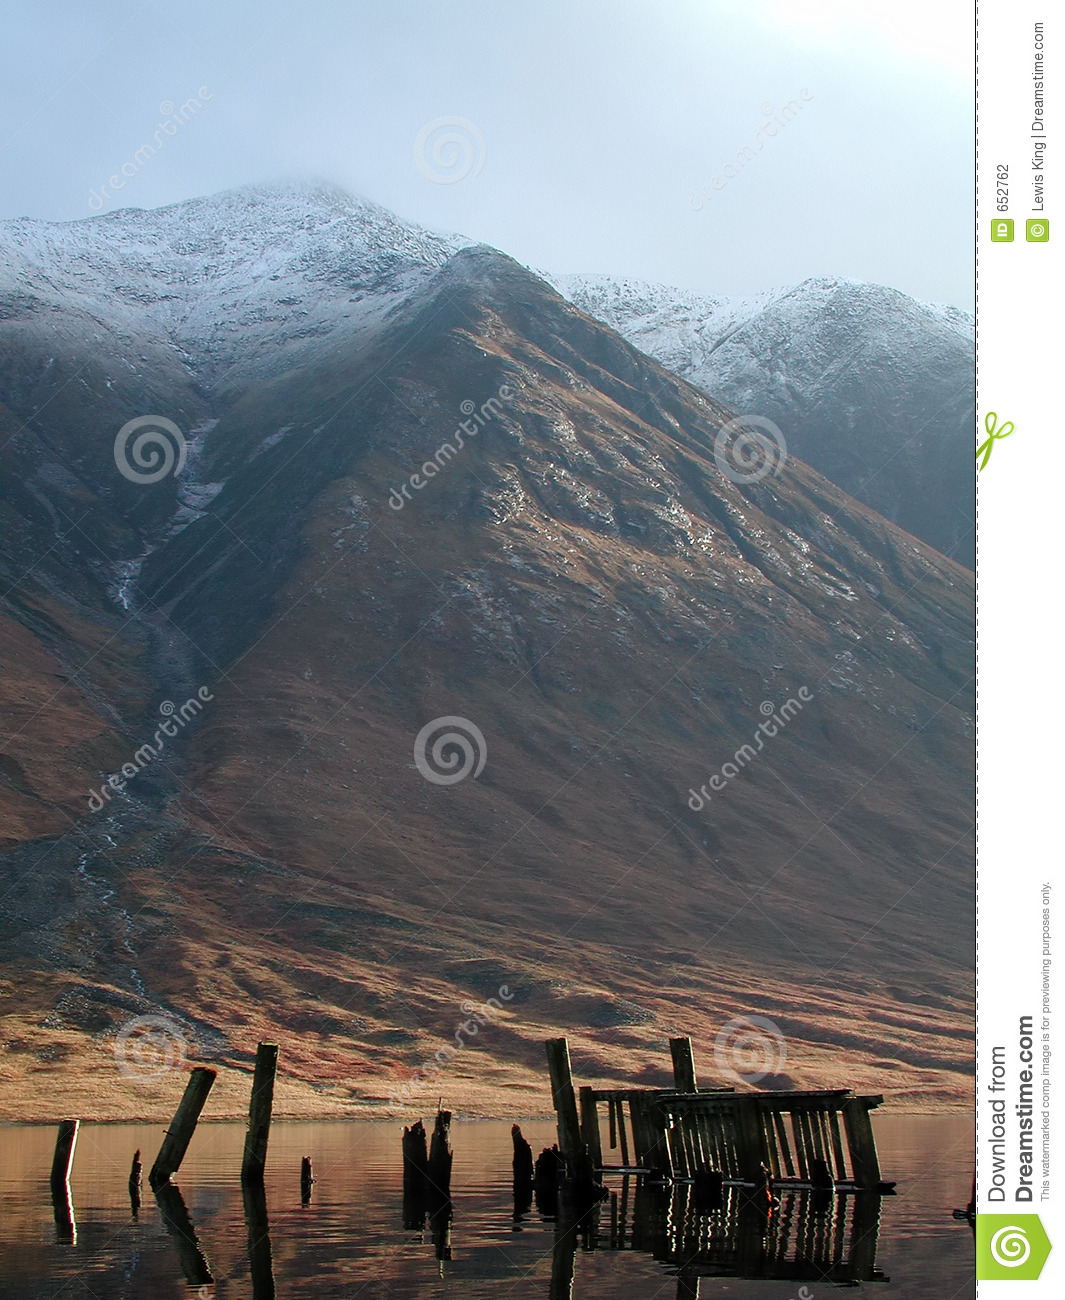 Loch Etive clipart #5, Download drawings